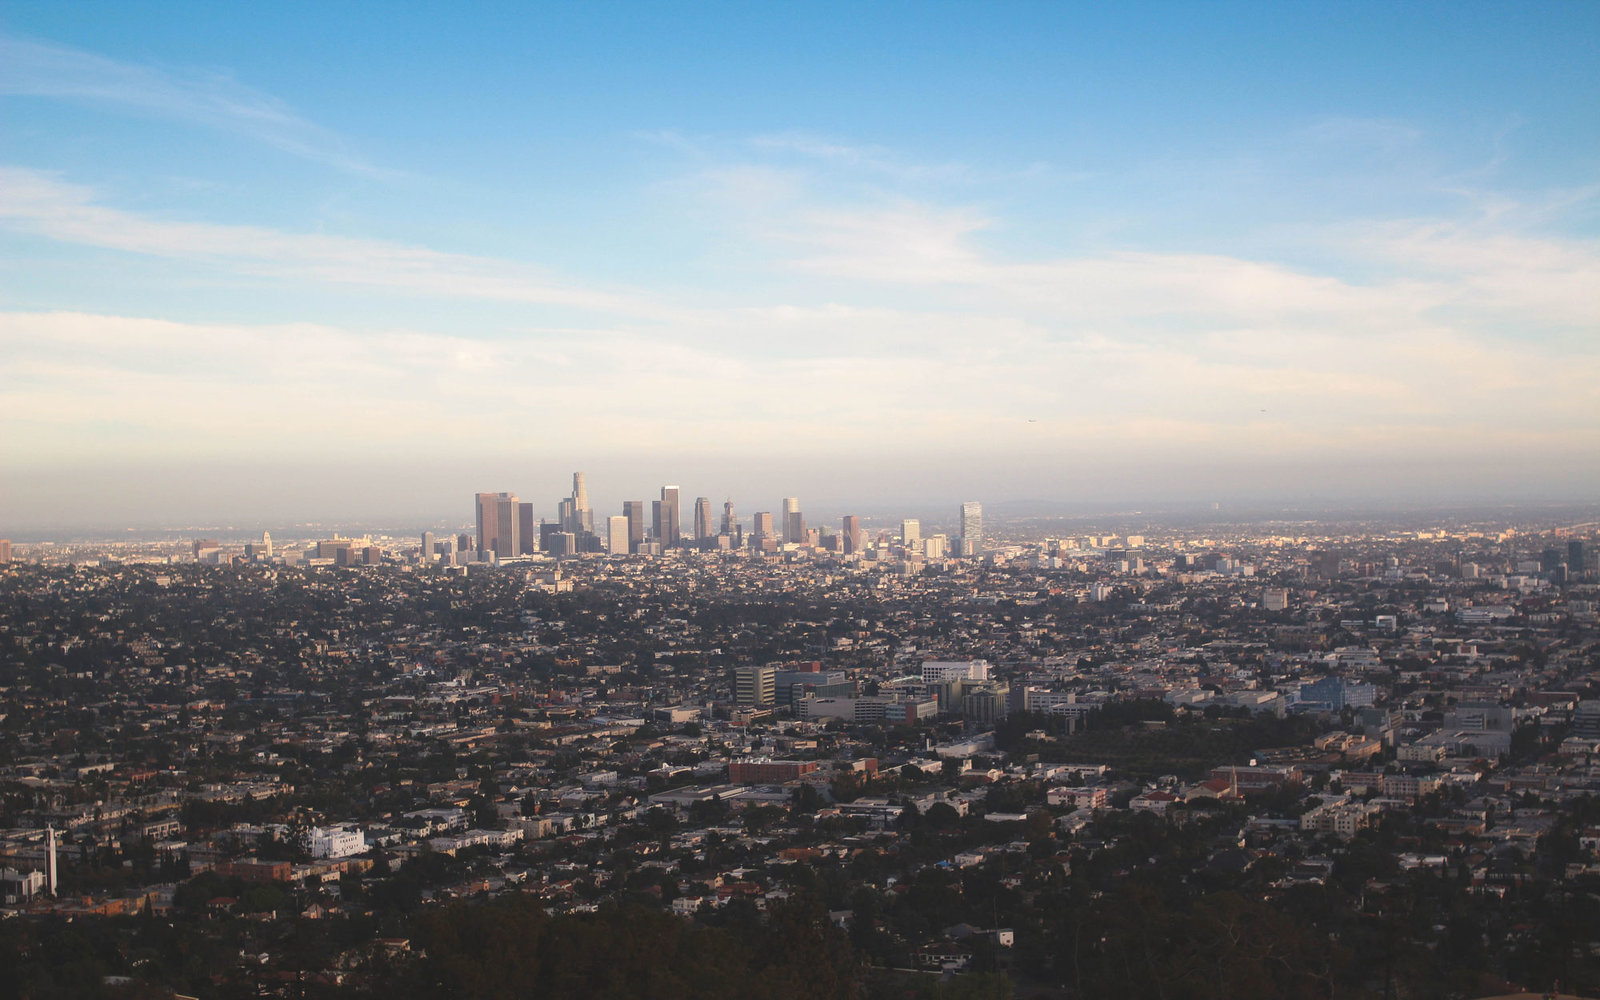 Griffiths Observatory California